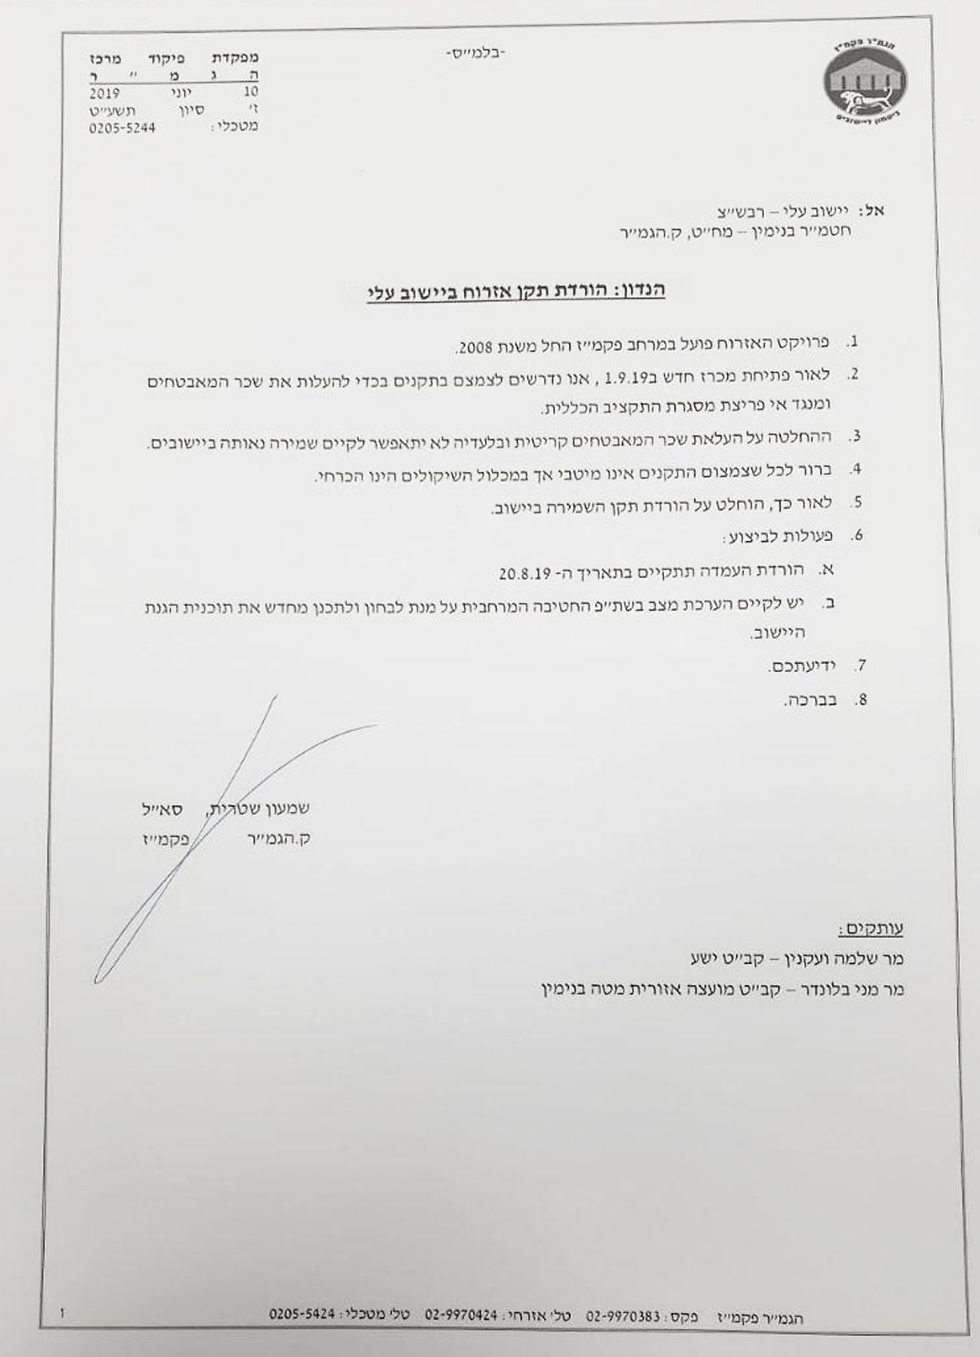 Letter sent by IDF Central Command